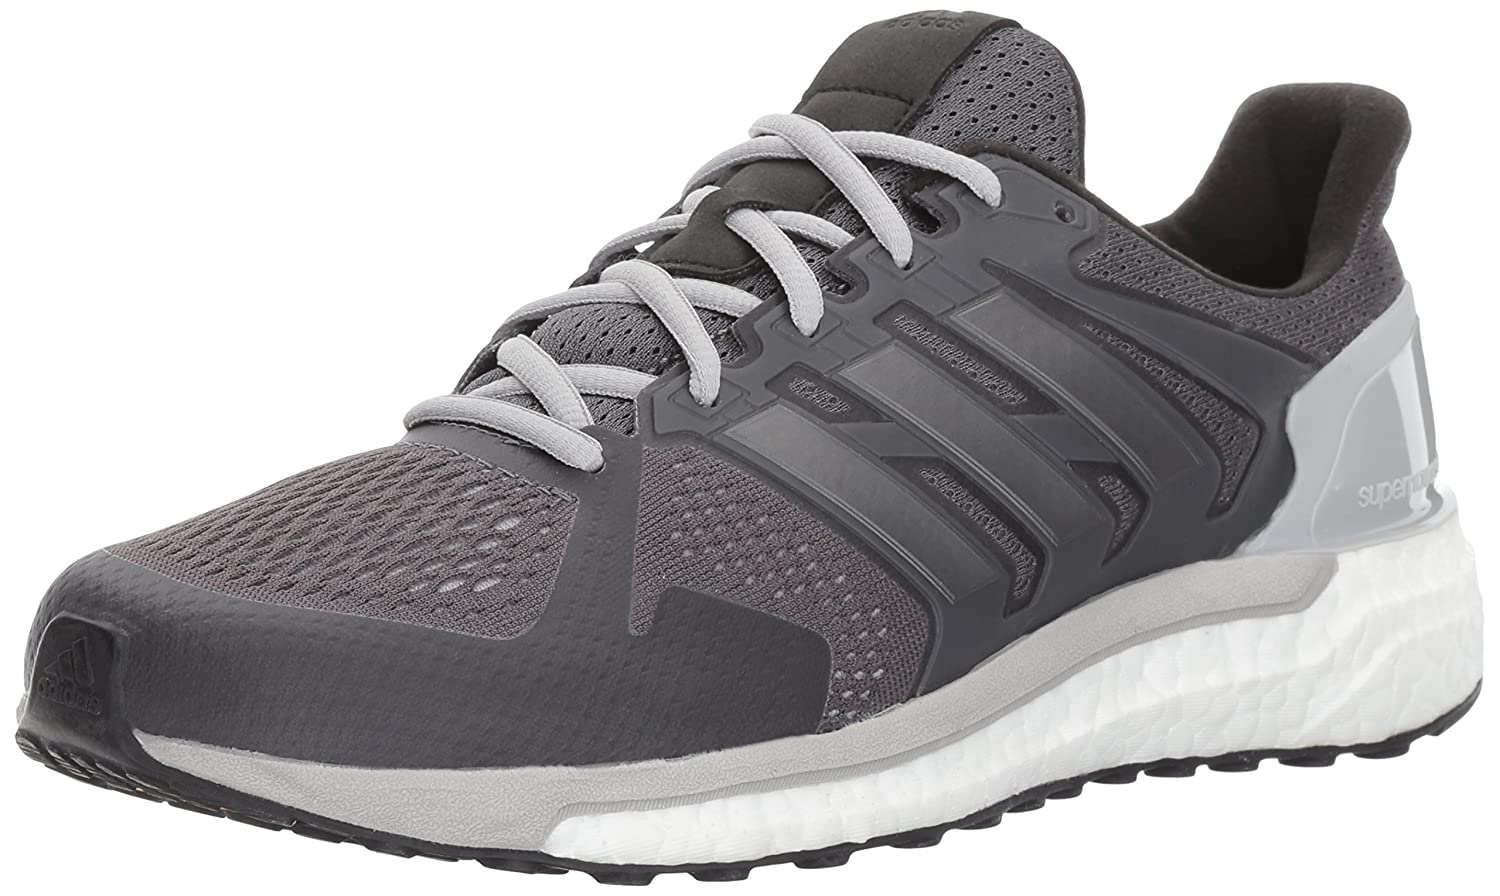 adidas Women's Supernova St W Running Shoe B01NBBX1B9 6.5 B(M) US|Grey Five/Night Metallic/Black